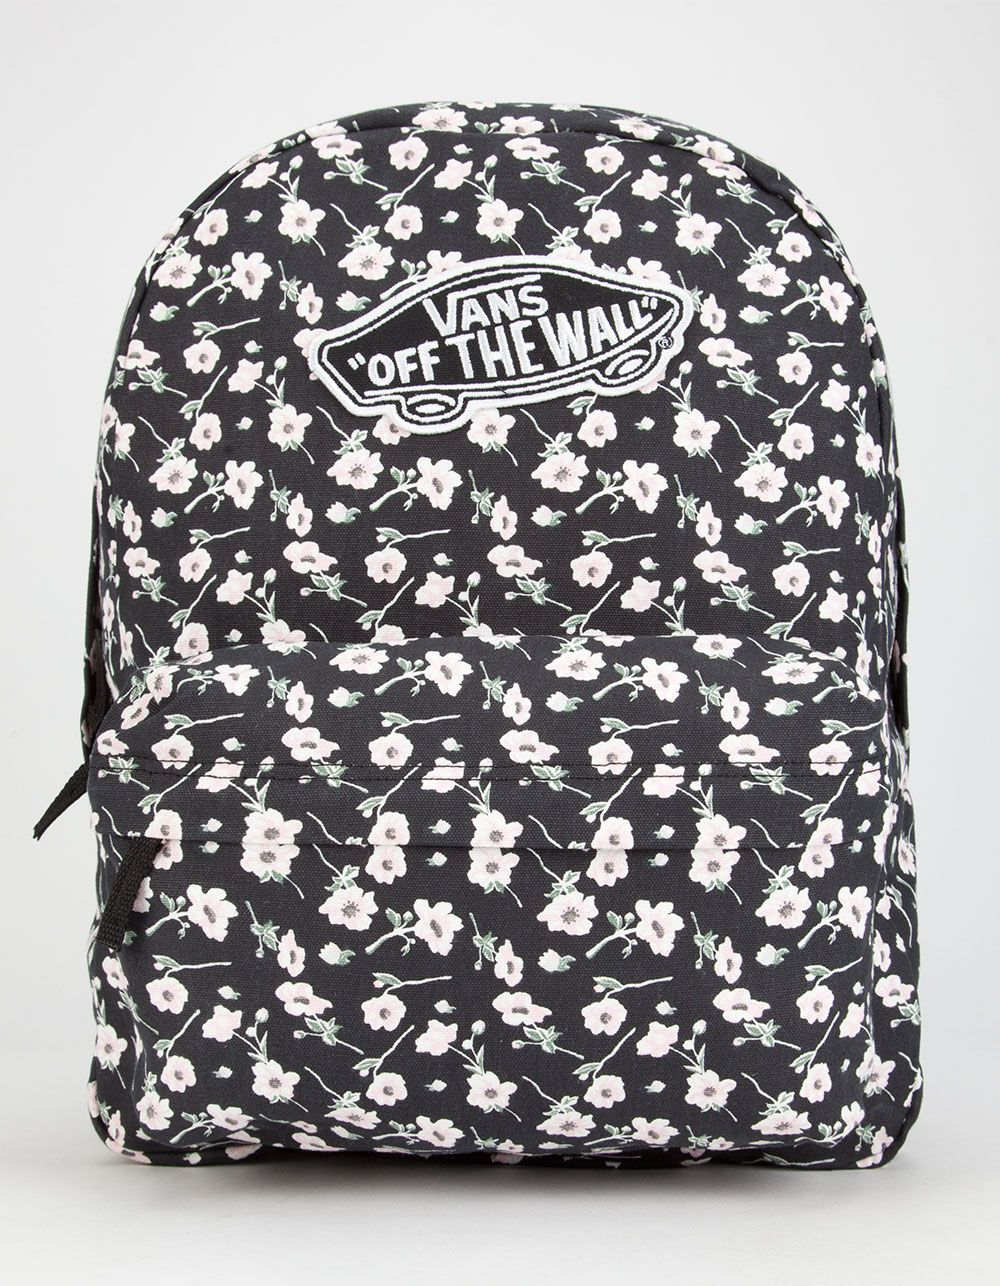 Vans Realm backpack. Allover floral print. Vans Off the Wall patch ...